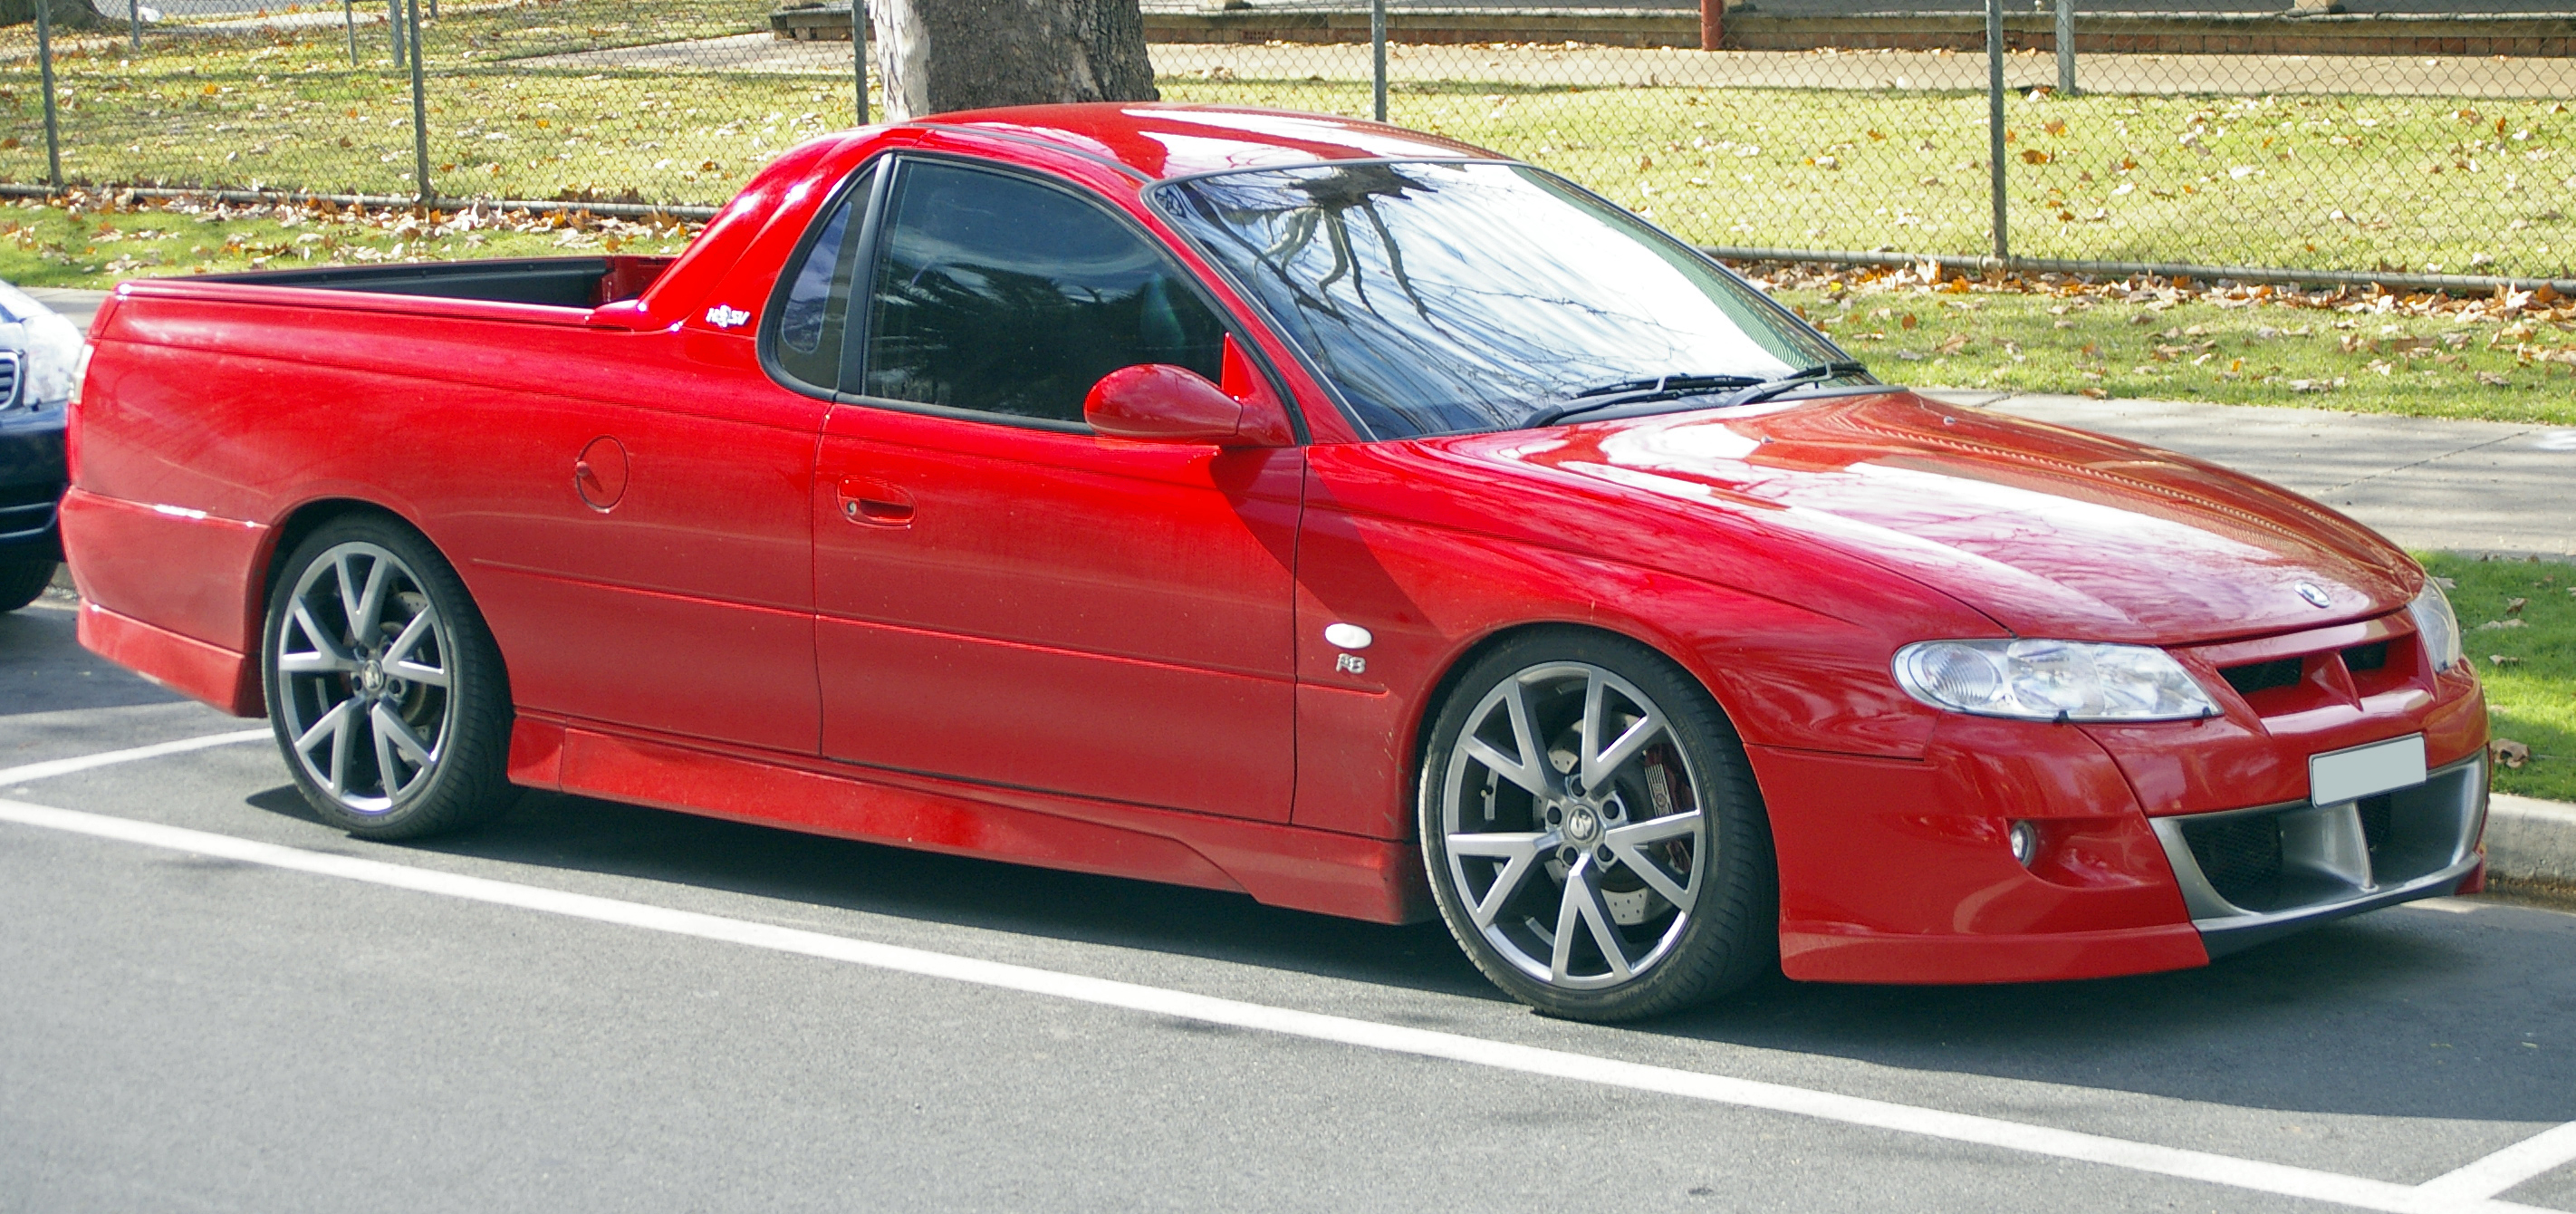 2002 Holden HSV #5